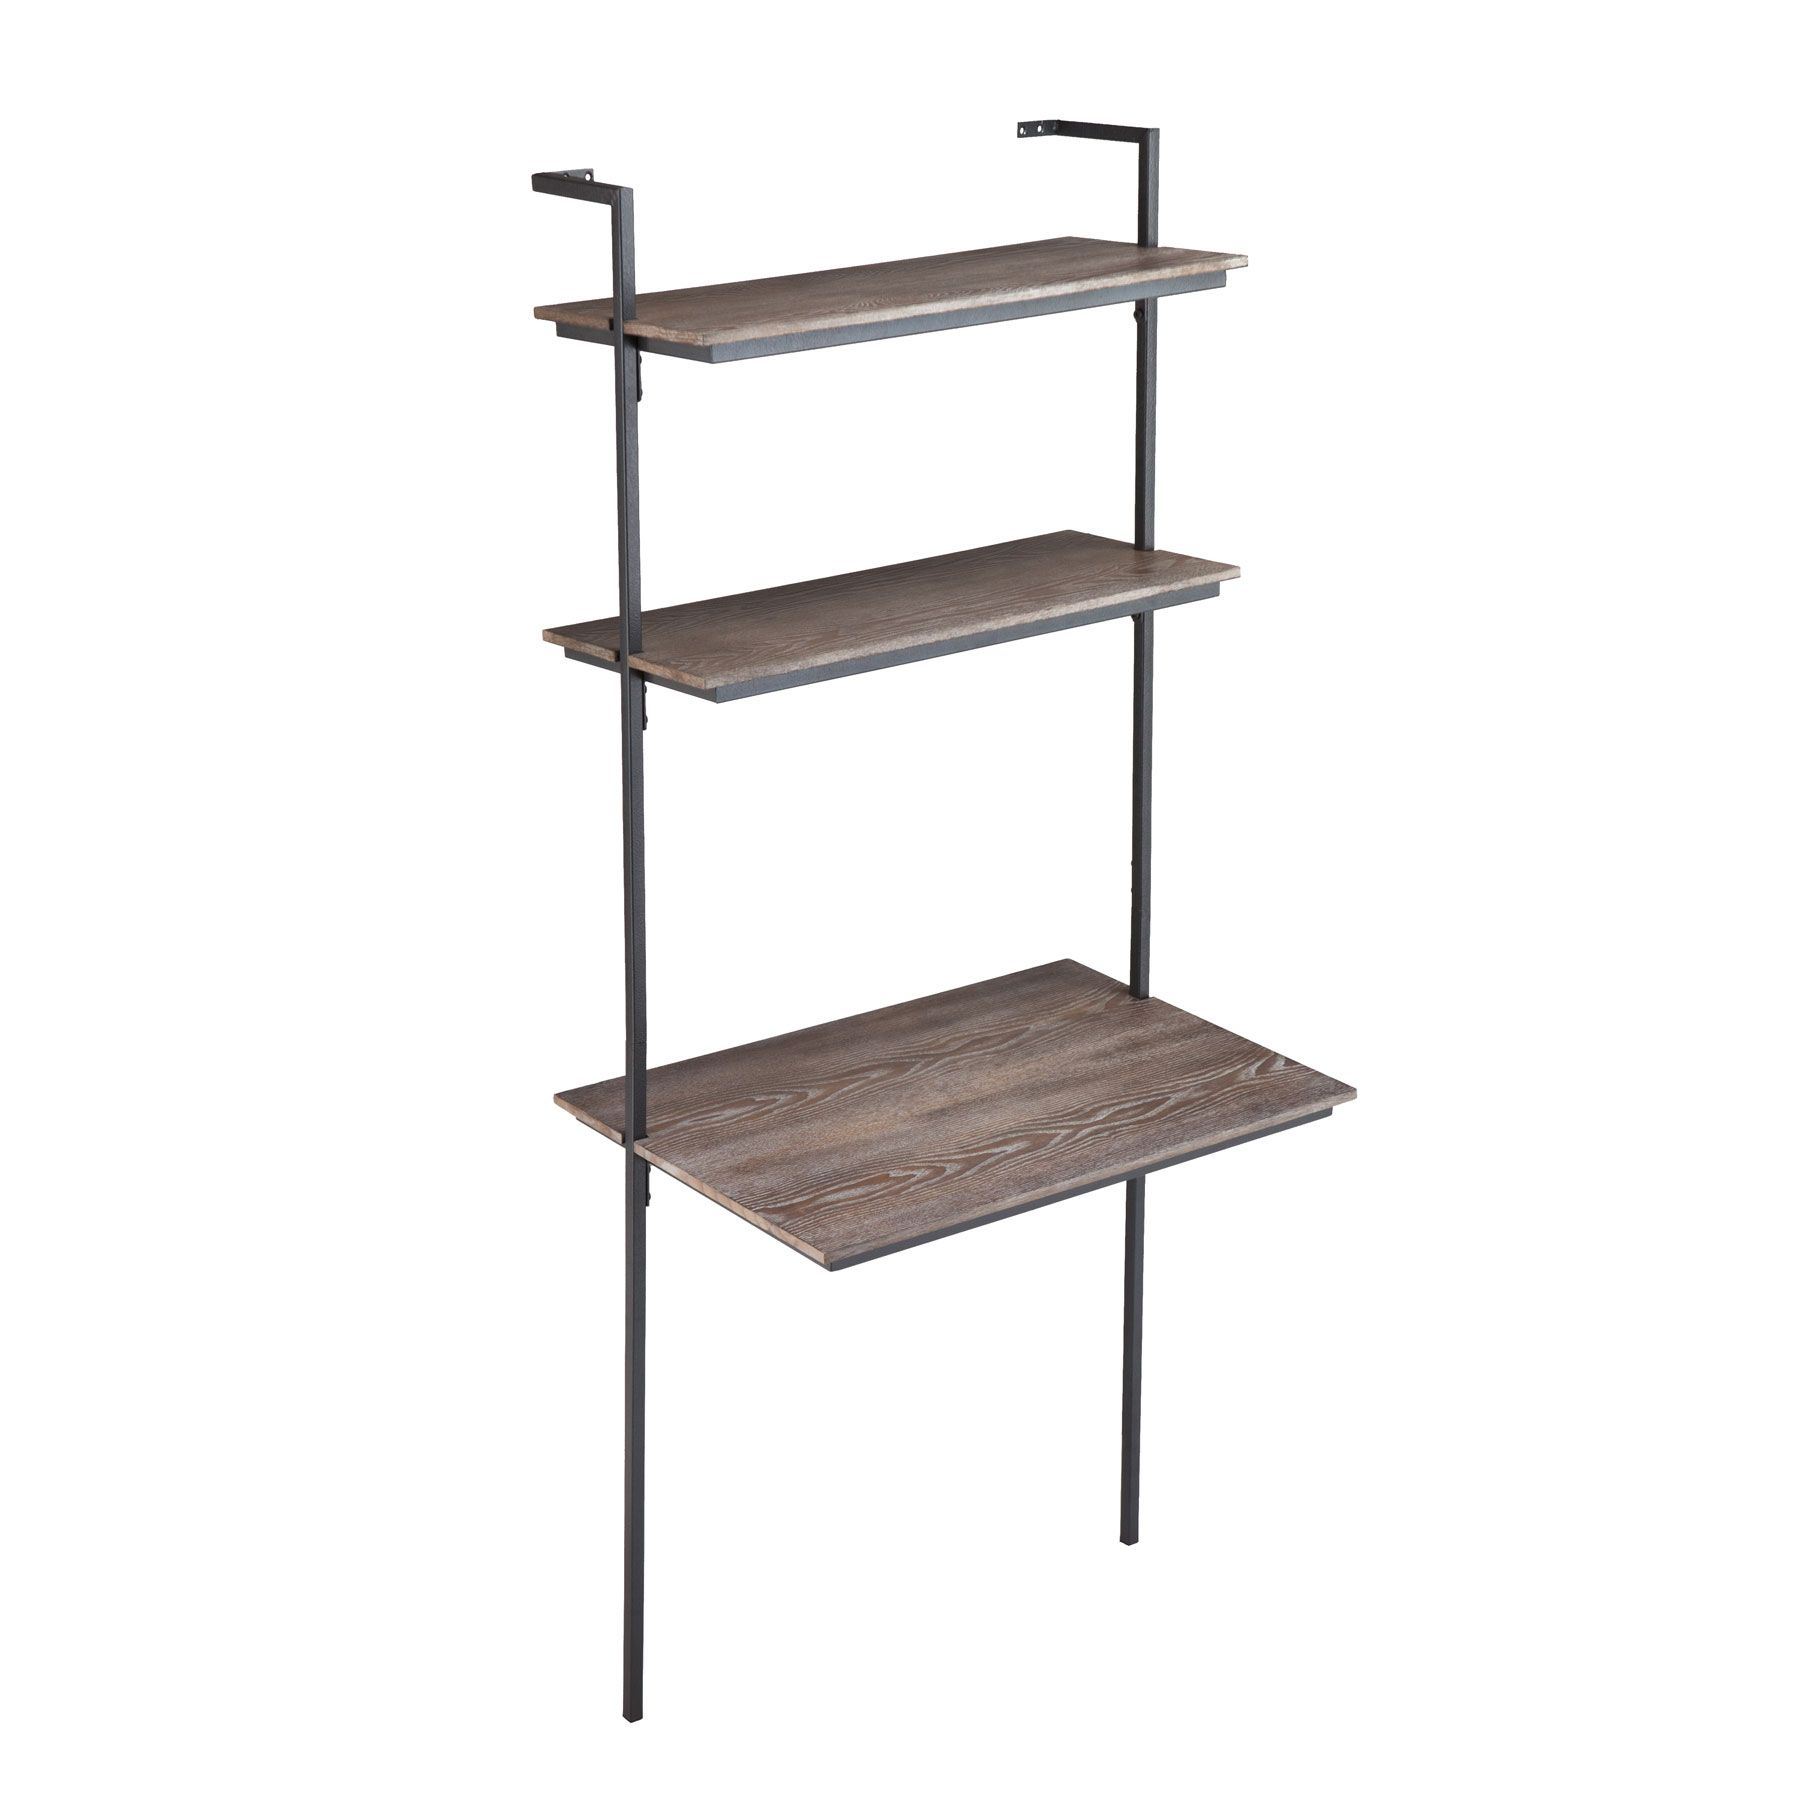 Furniture and décor for the modern lifestyle shelves with folding